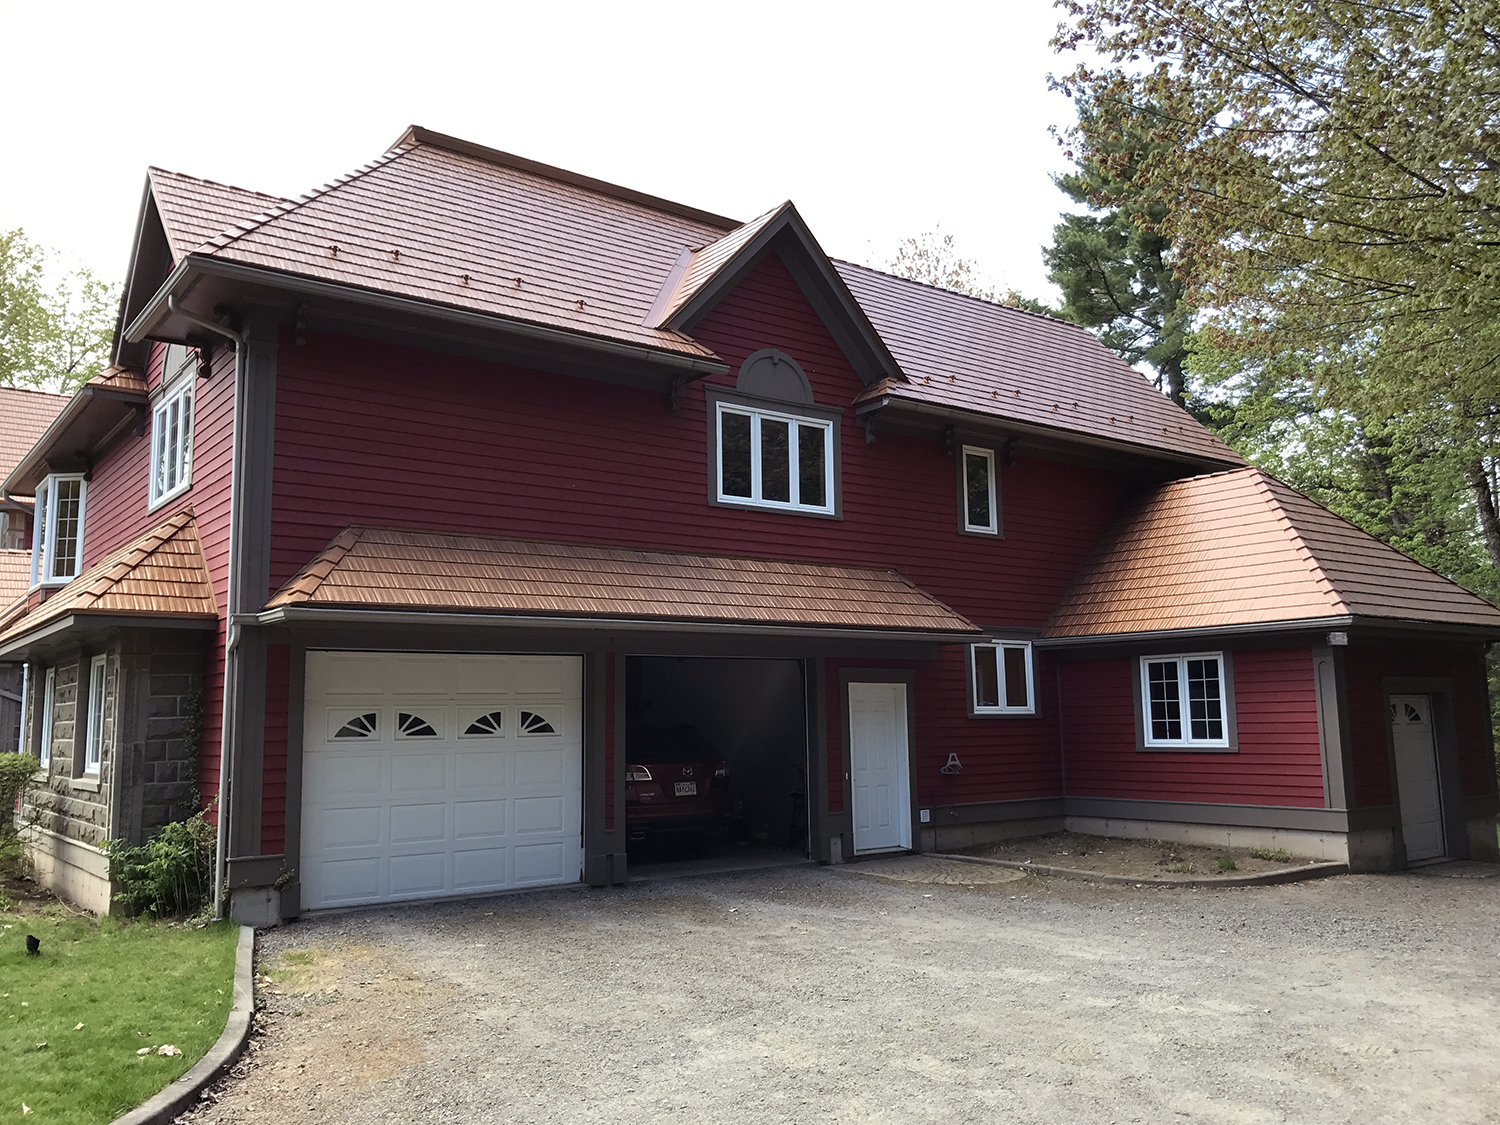 NBMP-16-033-Hanwell-NB-Canada-Aged-Copper-Interlock-Cedar-Shingle-Roof-08